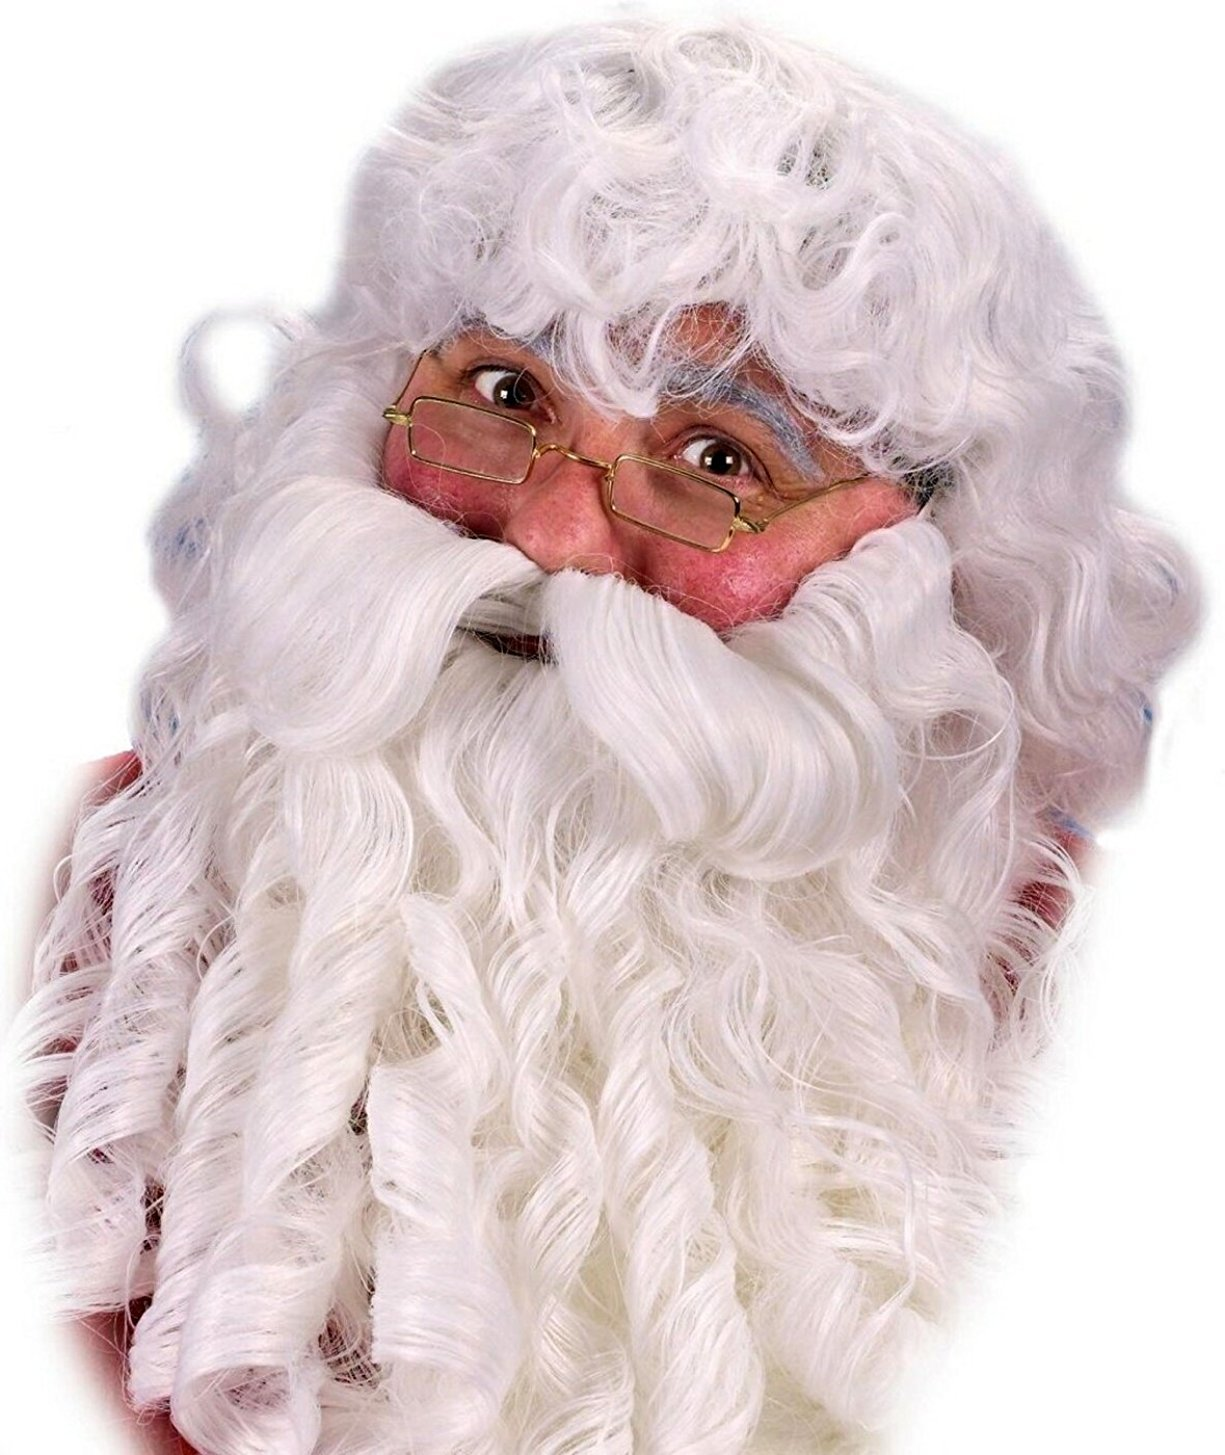 Fun World Costumes Men's Deluxe Santa Wig Beard and Mustache, White, One Size FunWorld 7521